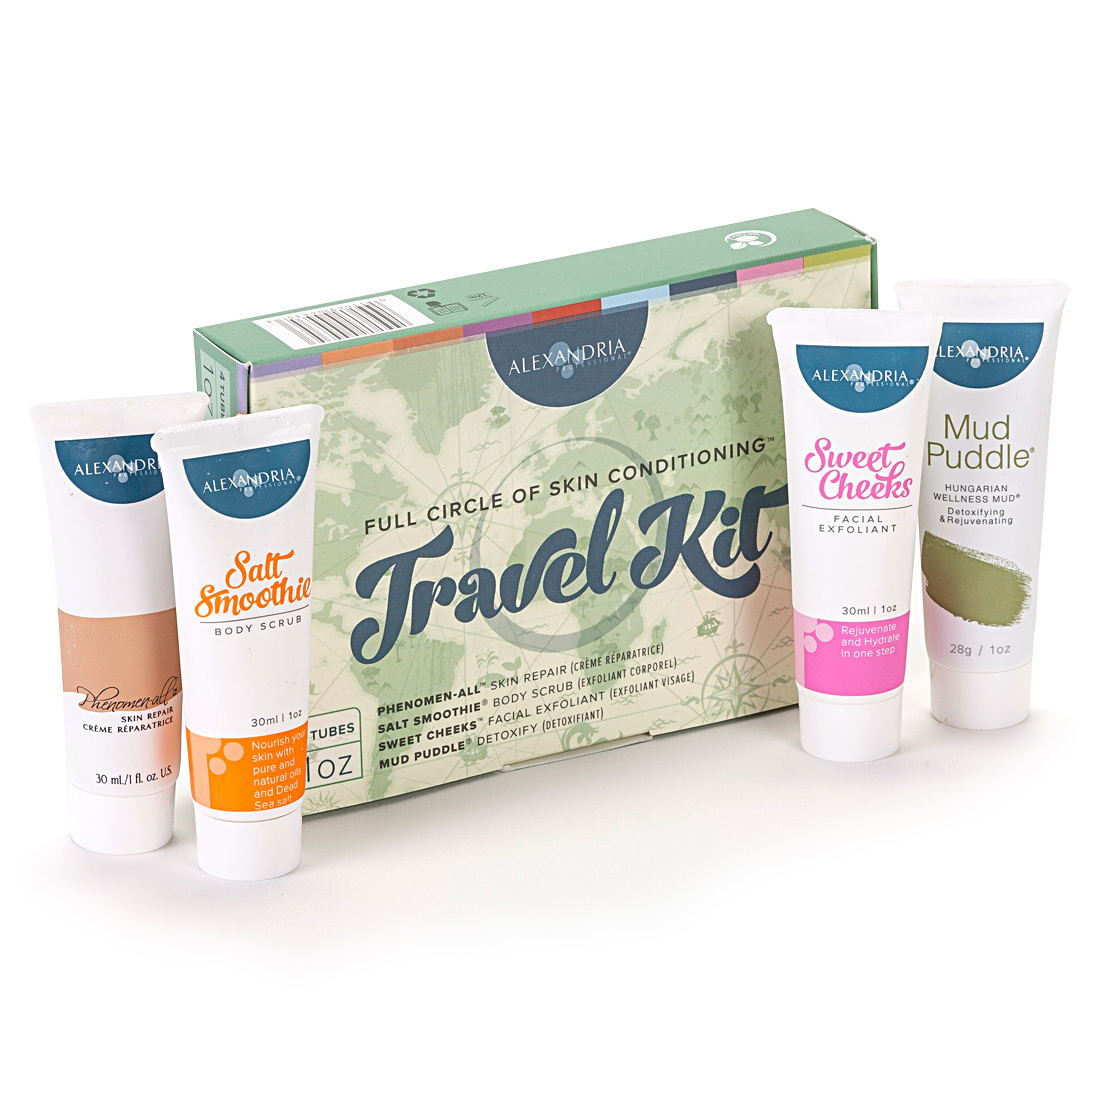 Travel Kit by Alexandria Professional